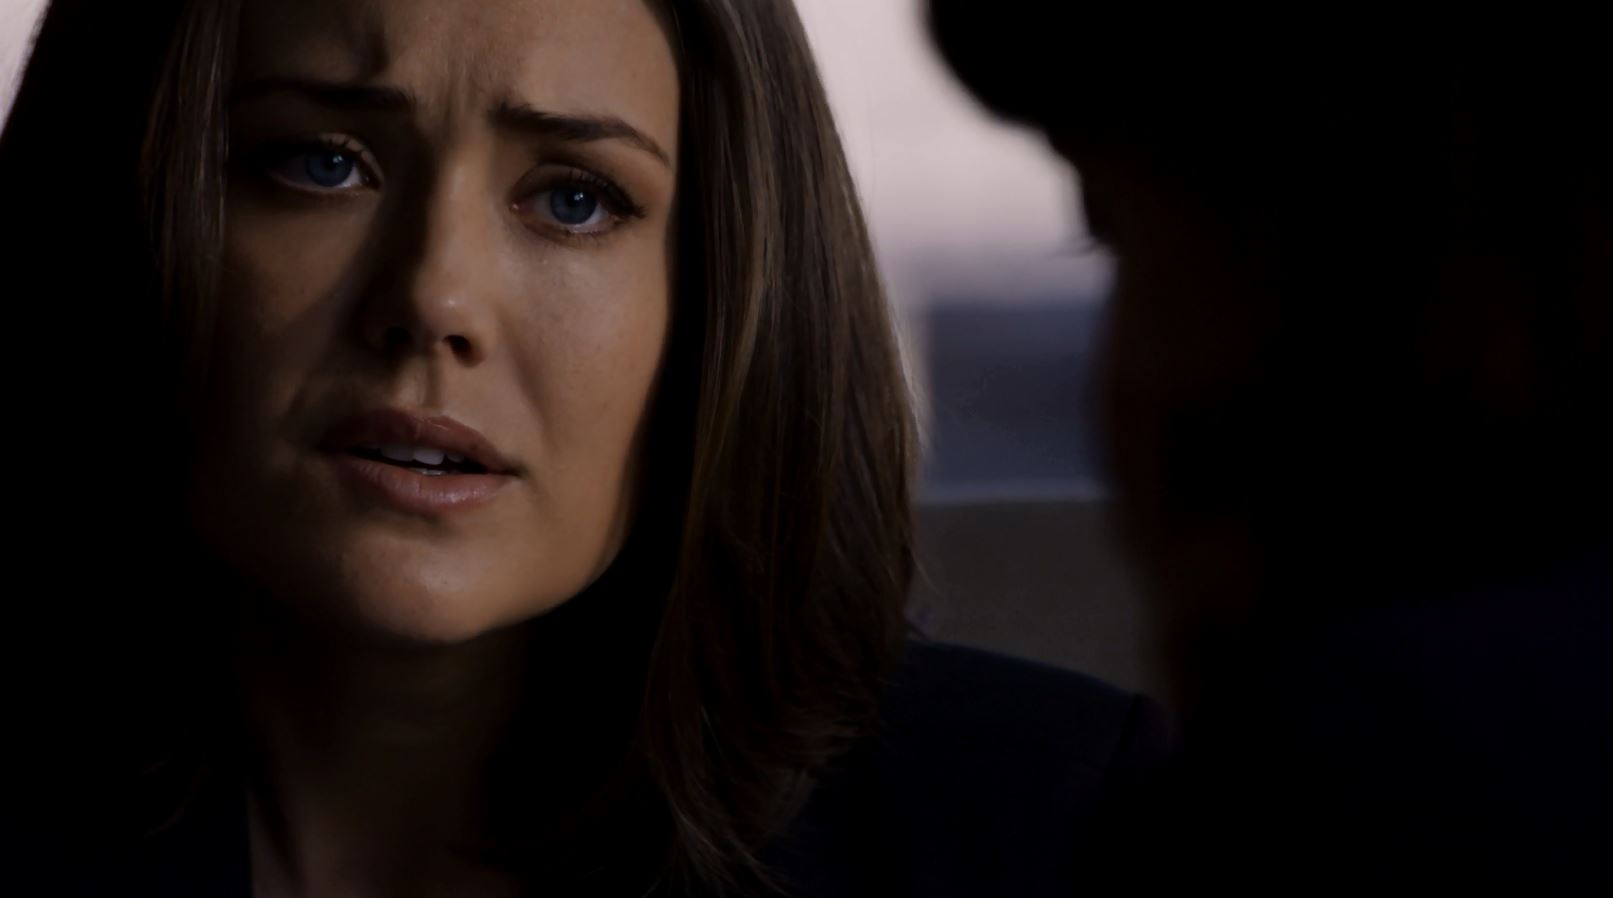 Megan Boone as agent Keen - The Blacklist S2Ep3 Dr. James Covington (No. 89) Review